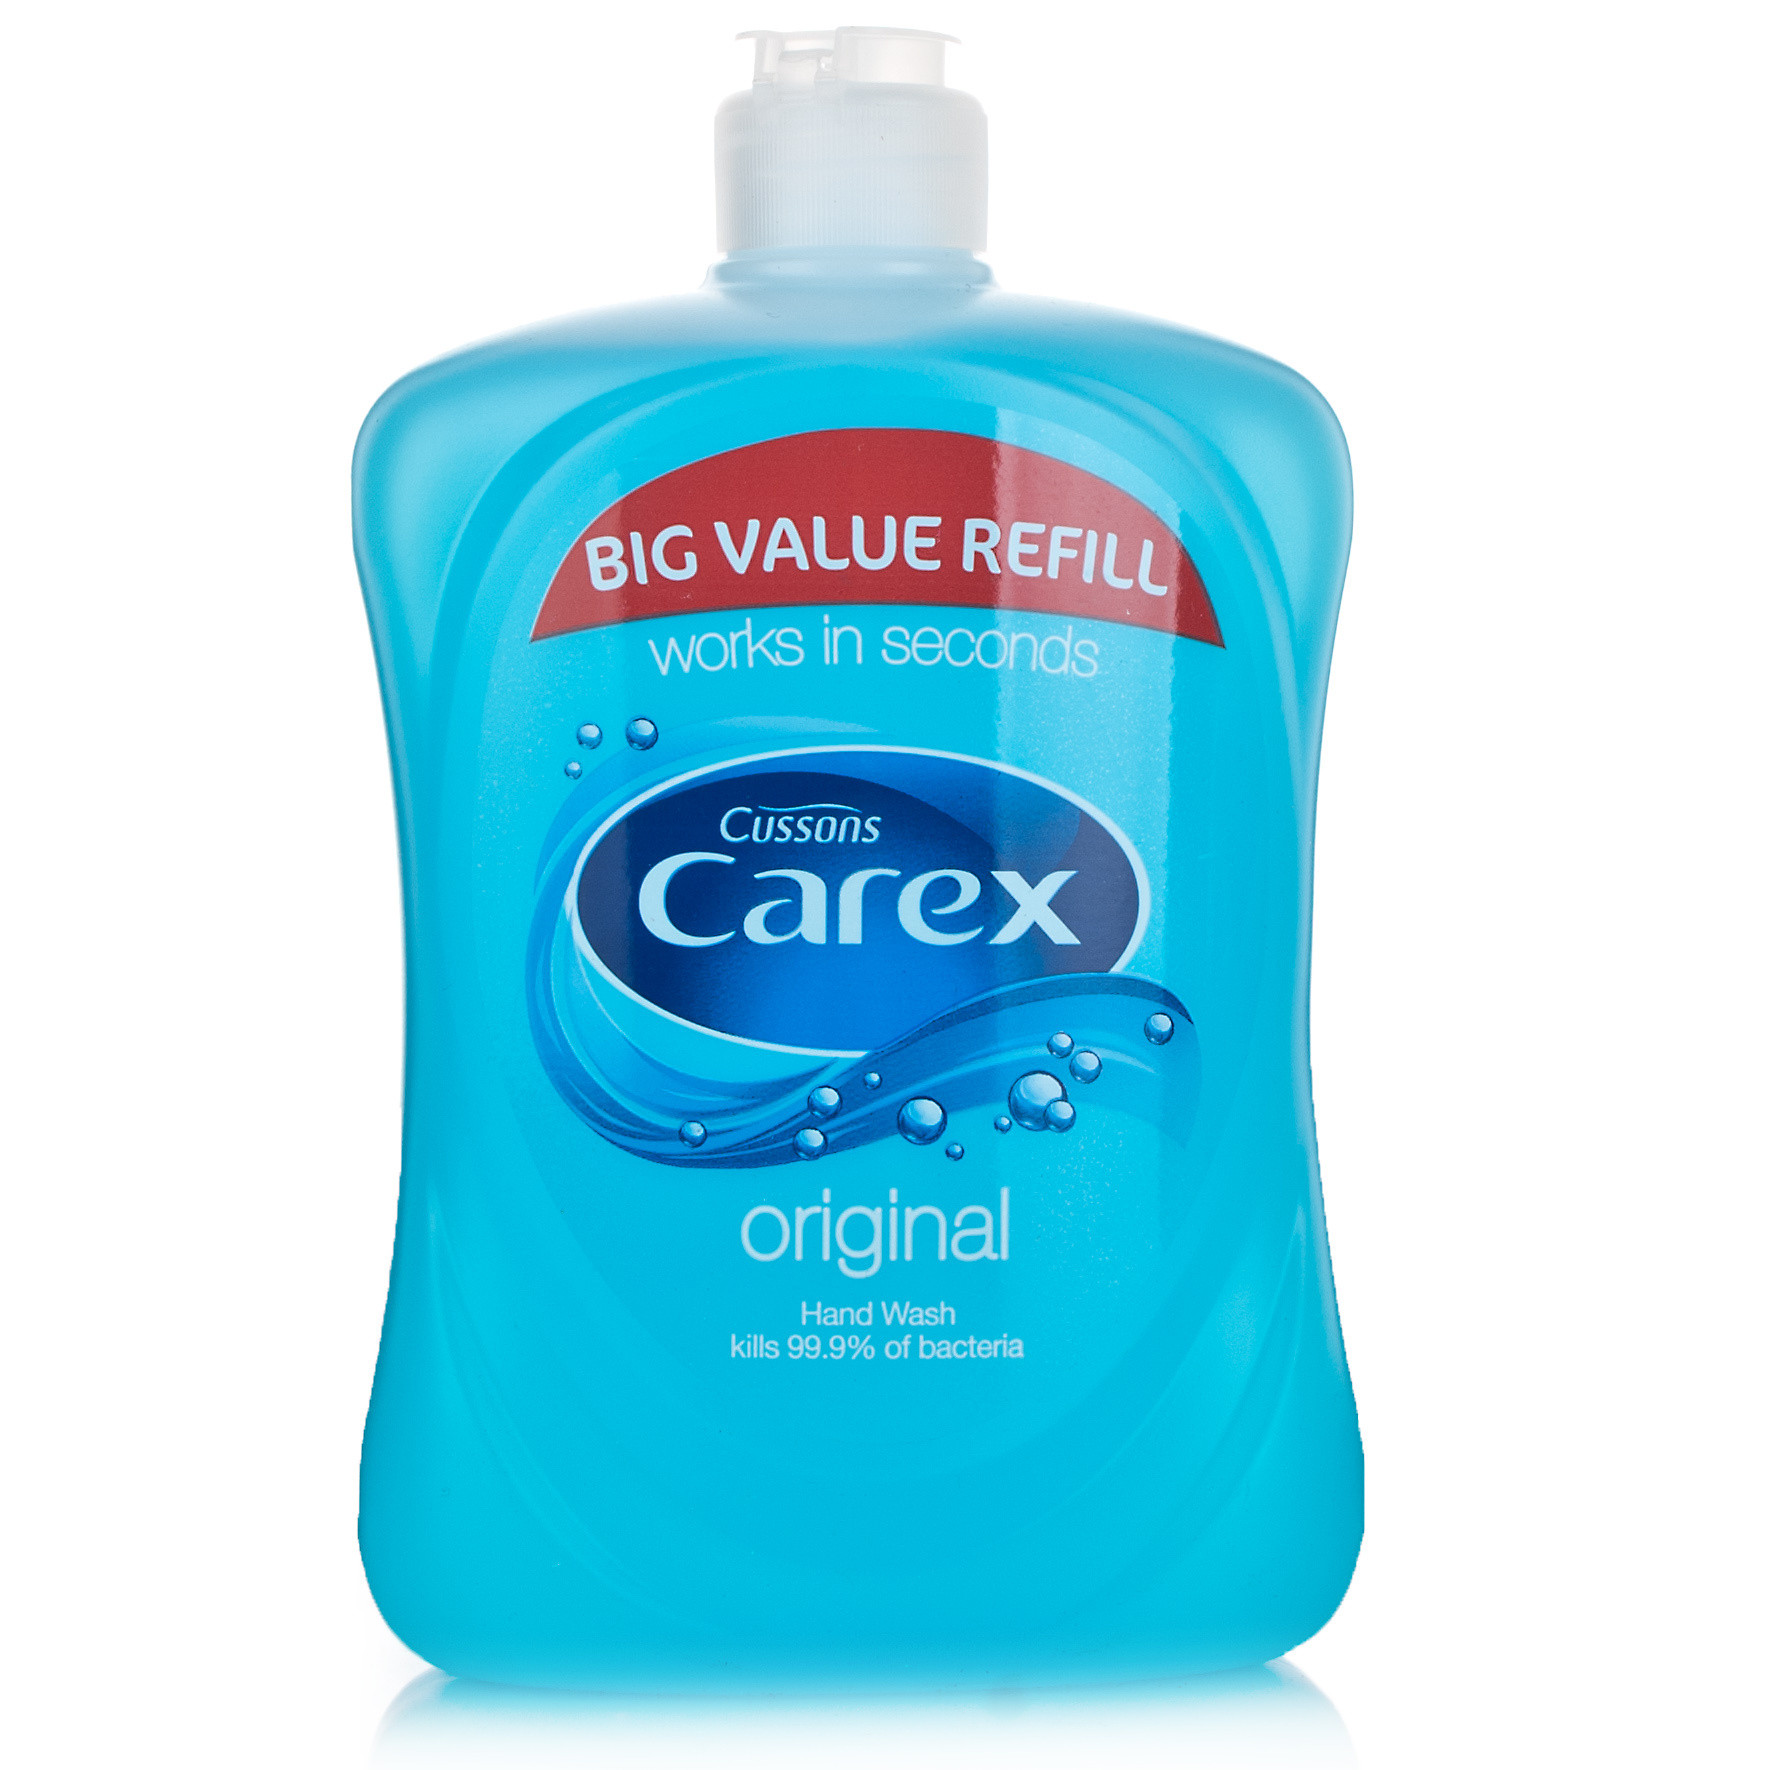 Carex Original Anti-Bacterial Handwash Refill